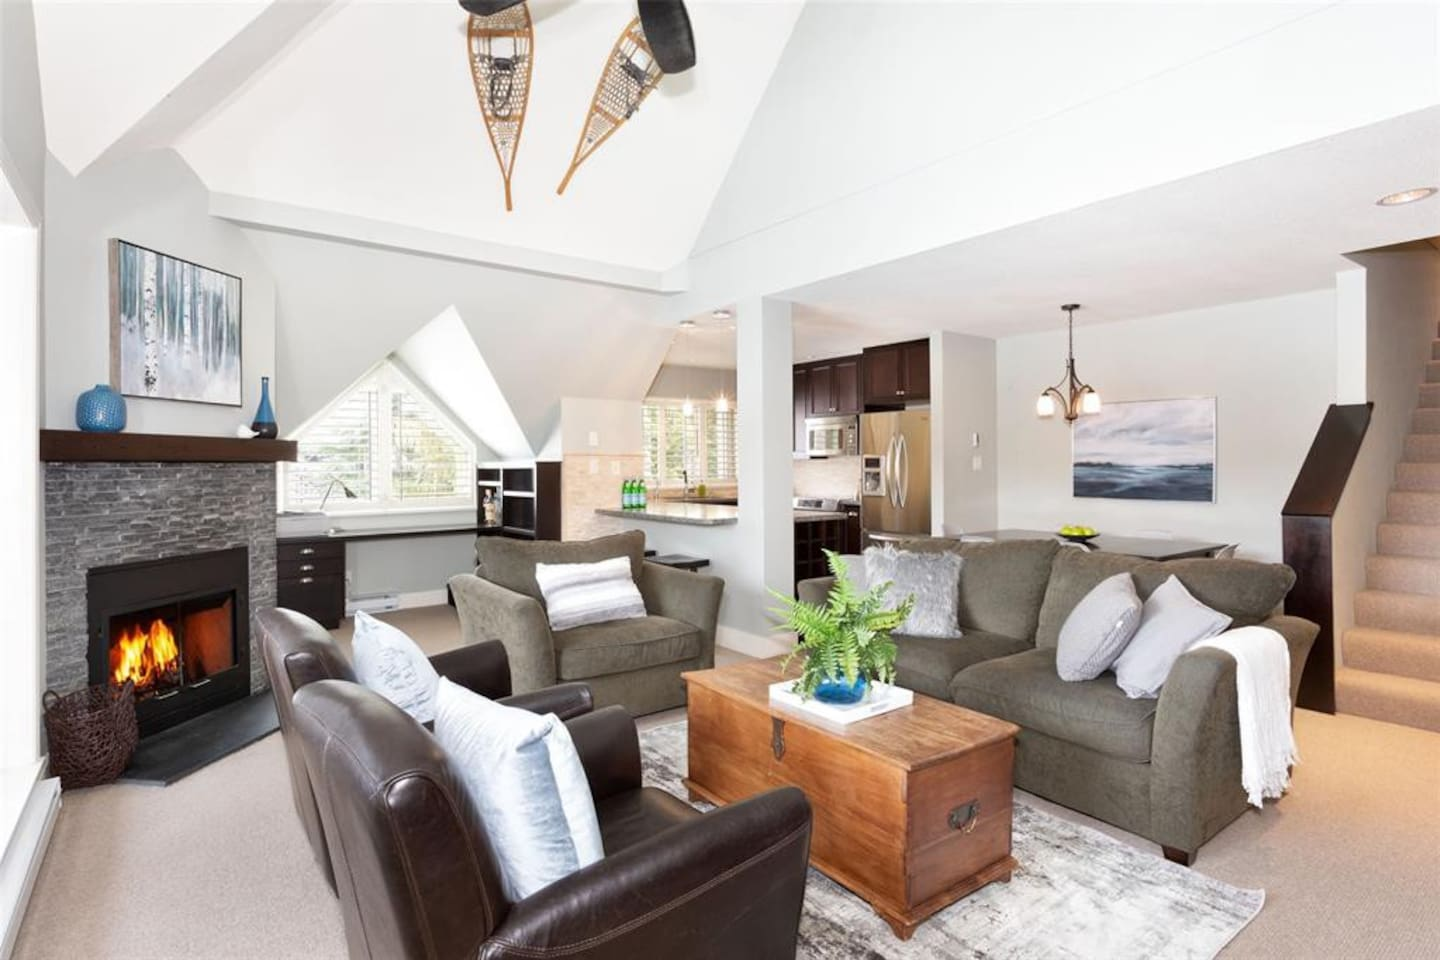 WELCOME to Gleneagle - This bright and spacious home is nestled right on the Fairmont golf course. Split over 3 levels this stylish home is perfect for larger families or groups of friends wanting a luxurious winter escape.